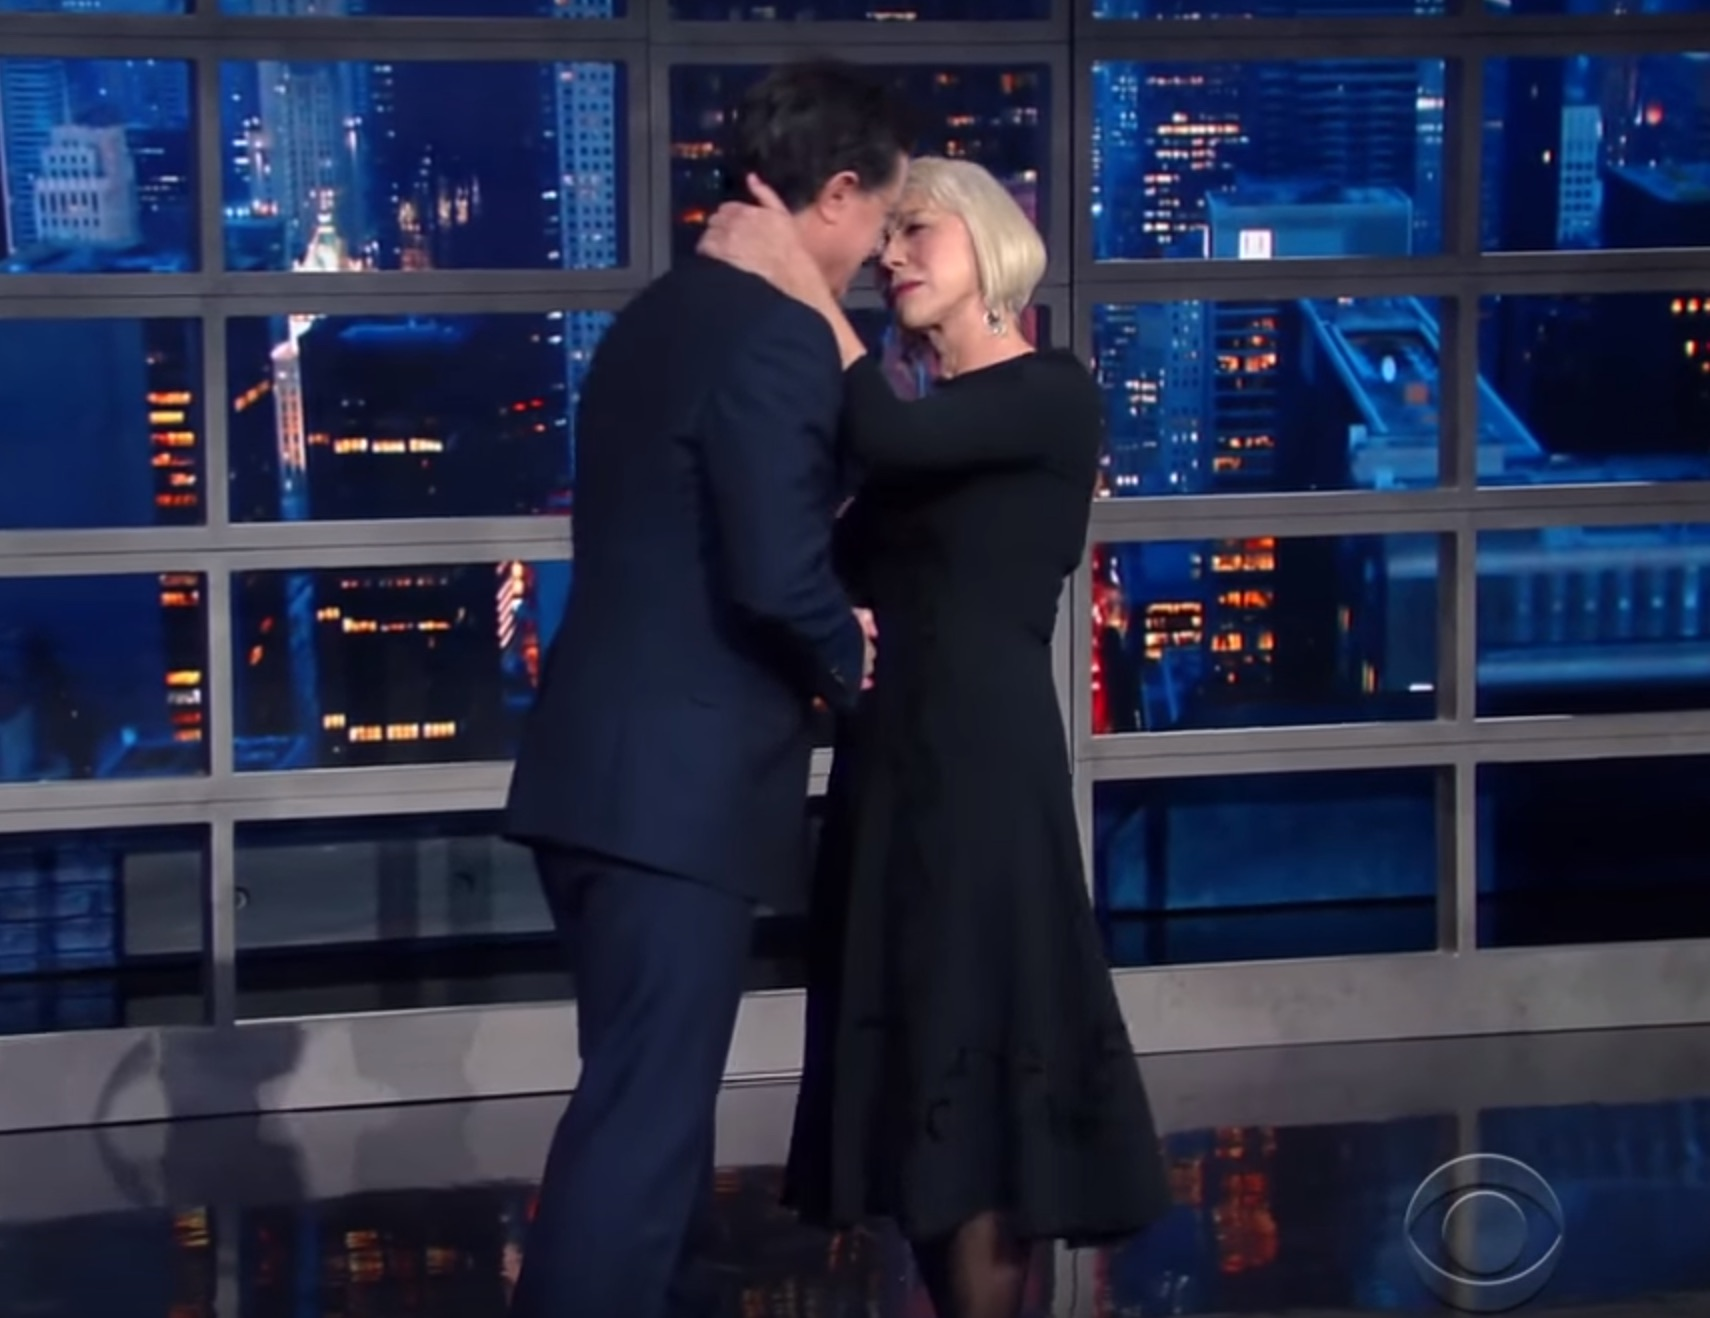 Helen Mirren gave Stephen Colbert a greeting he never expected